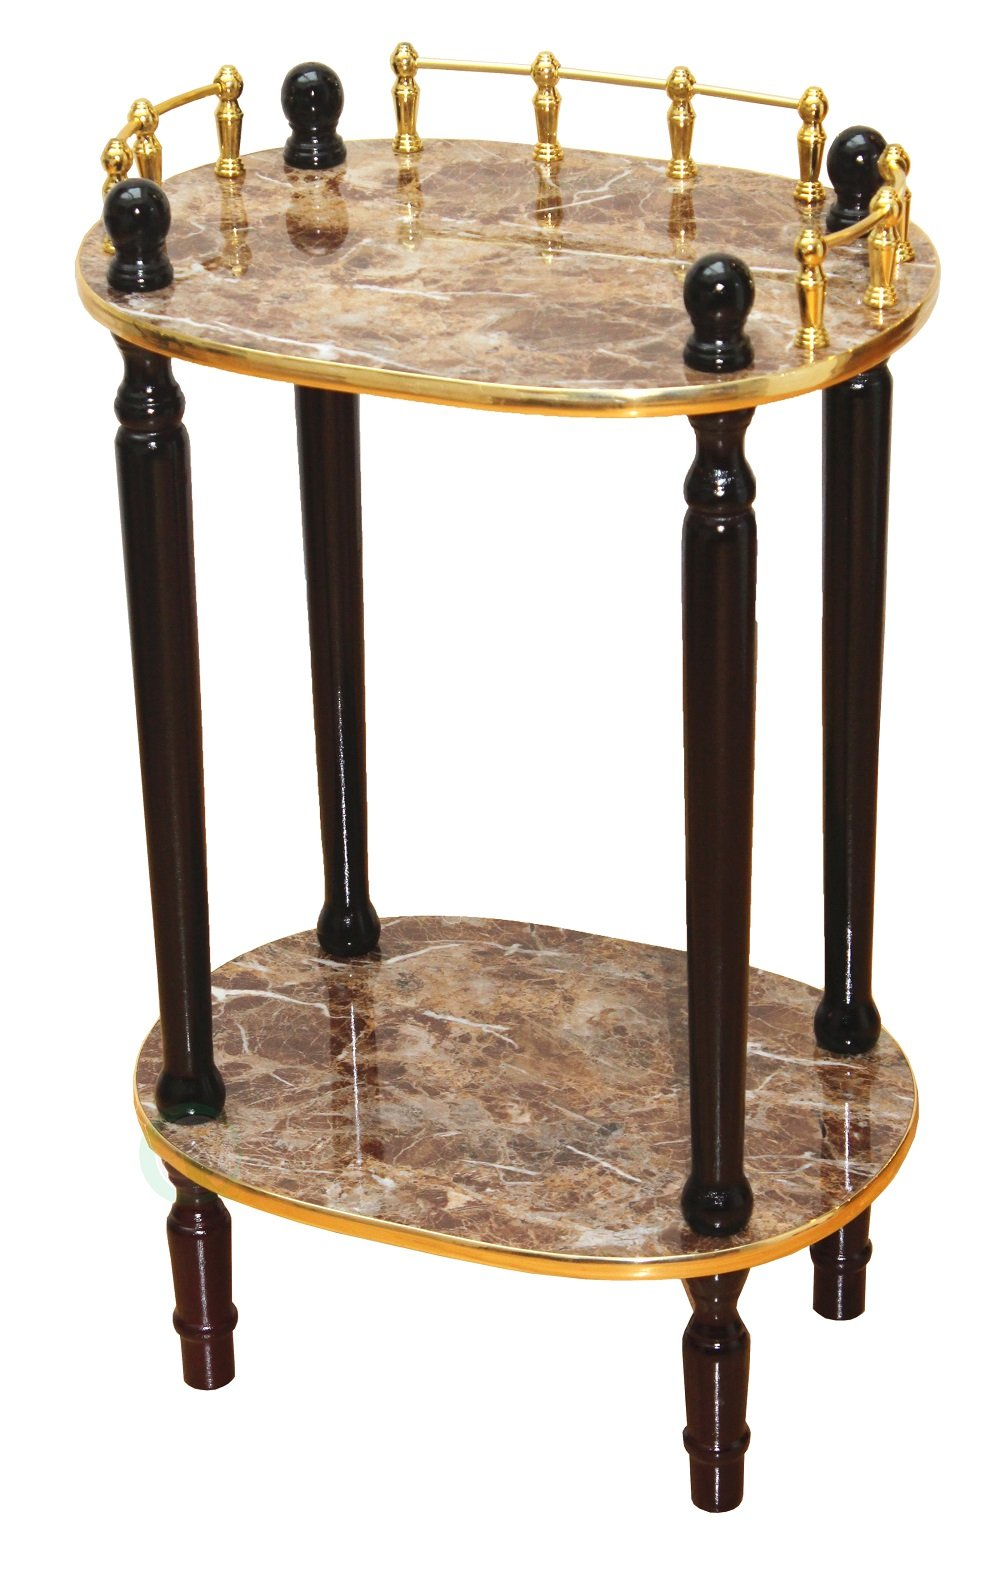 Uniquewise(TM) 2-Tiered Telephone Table, Gold Marble and Cherry Finish (Gold Marble) by Uniquewise